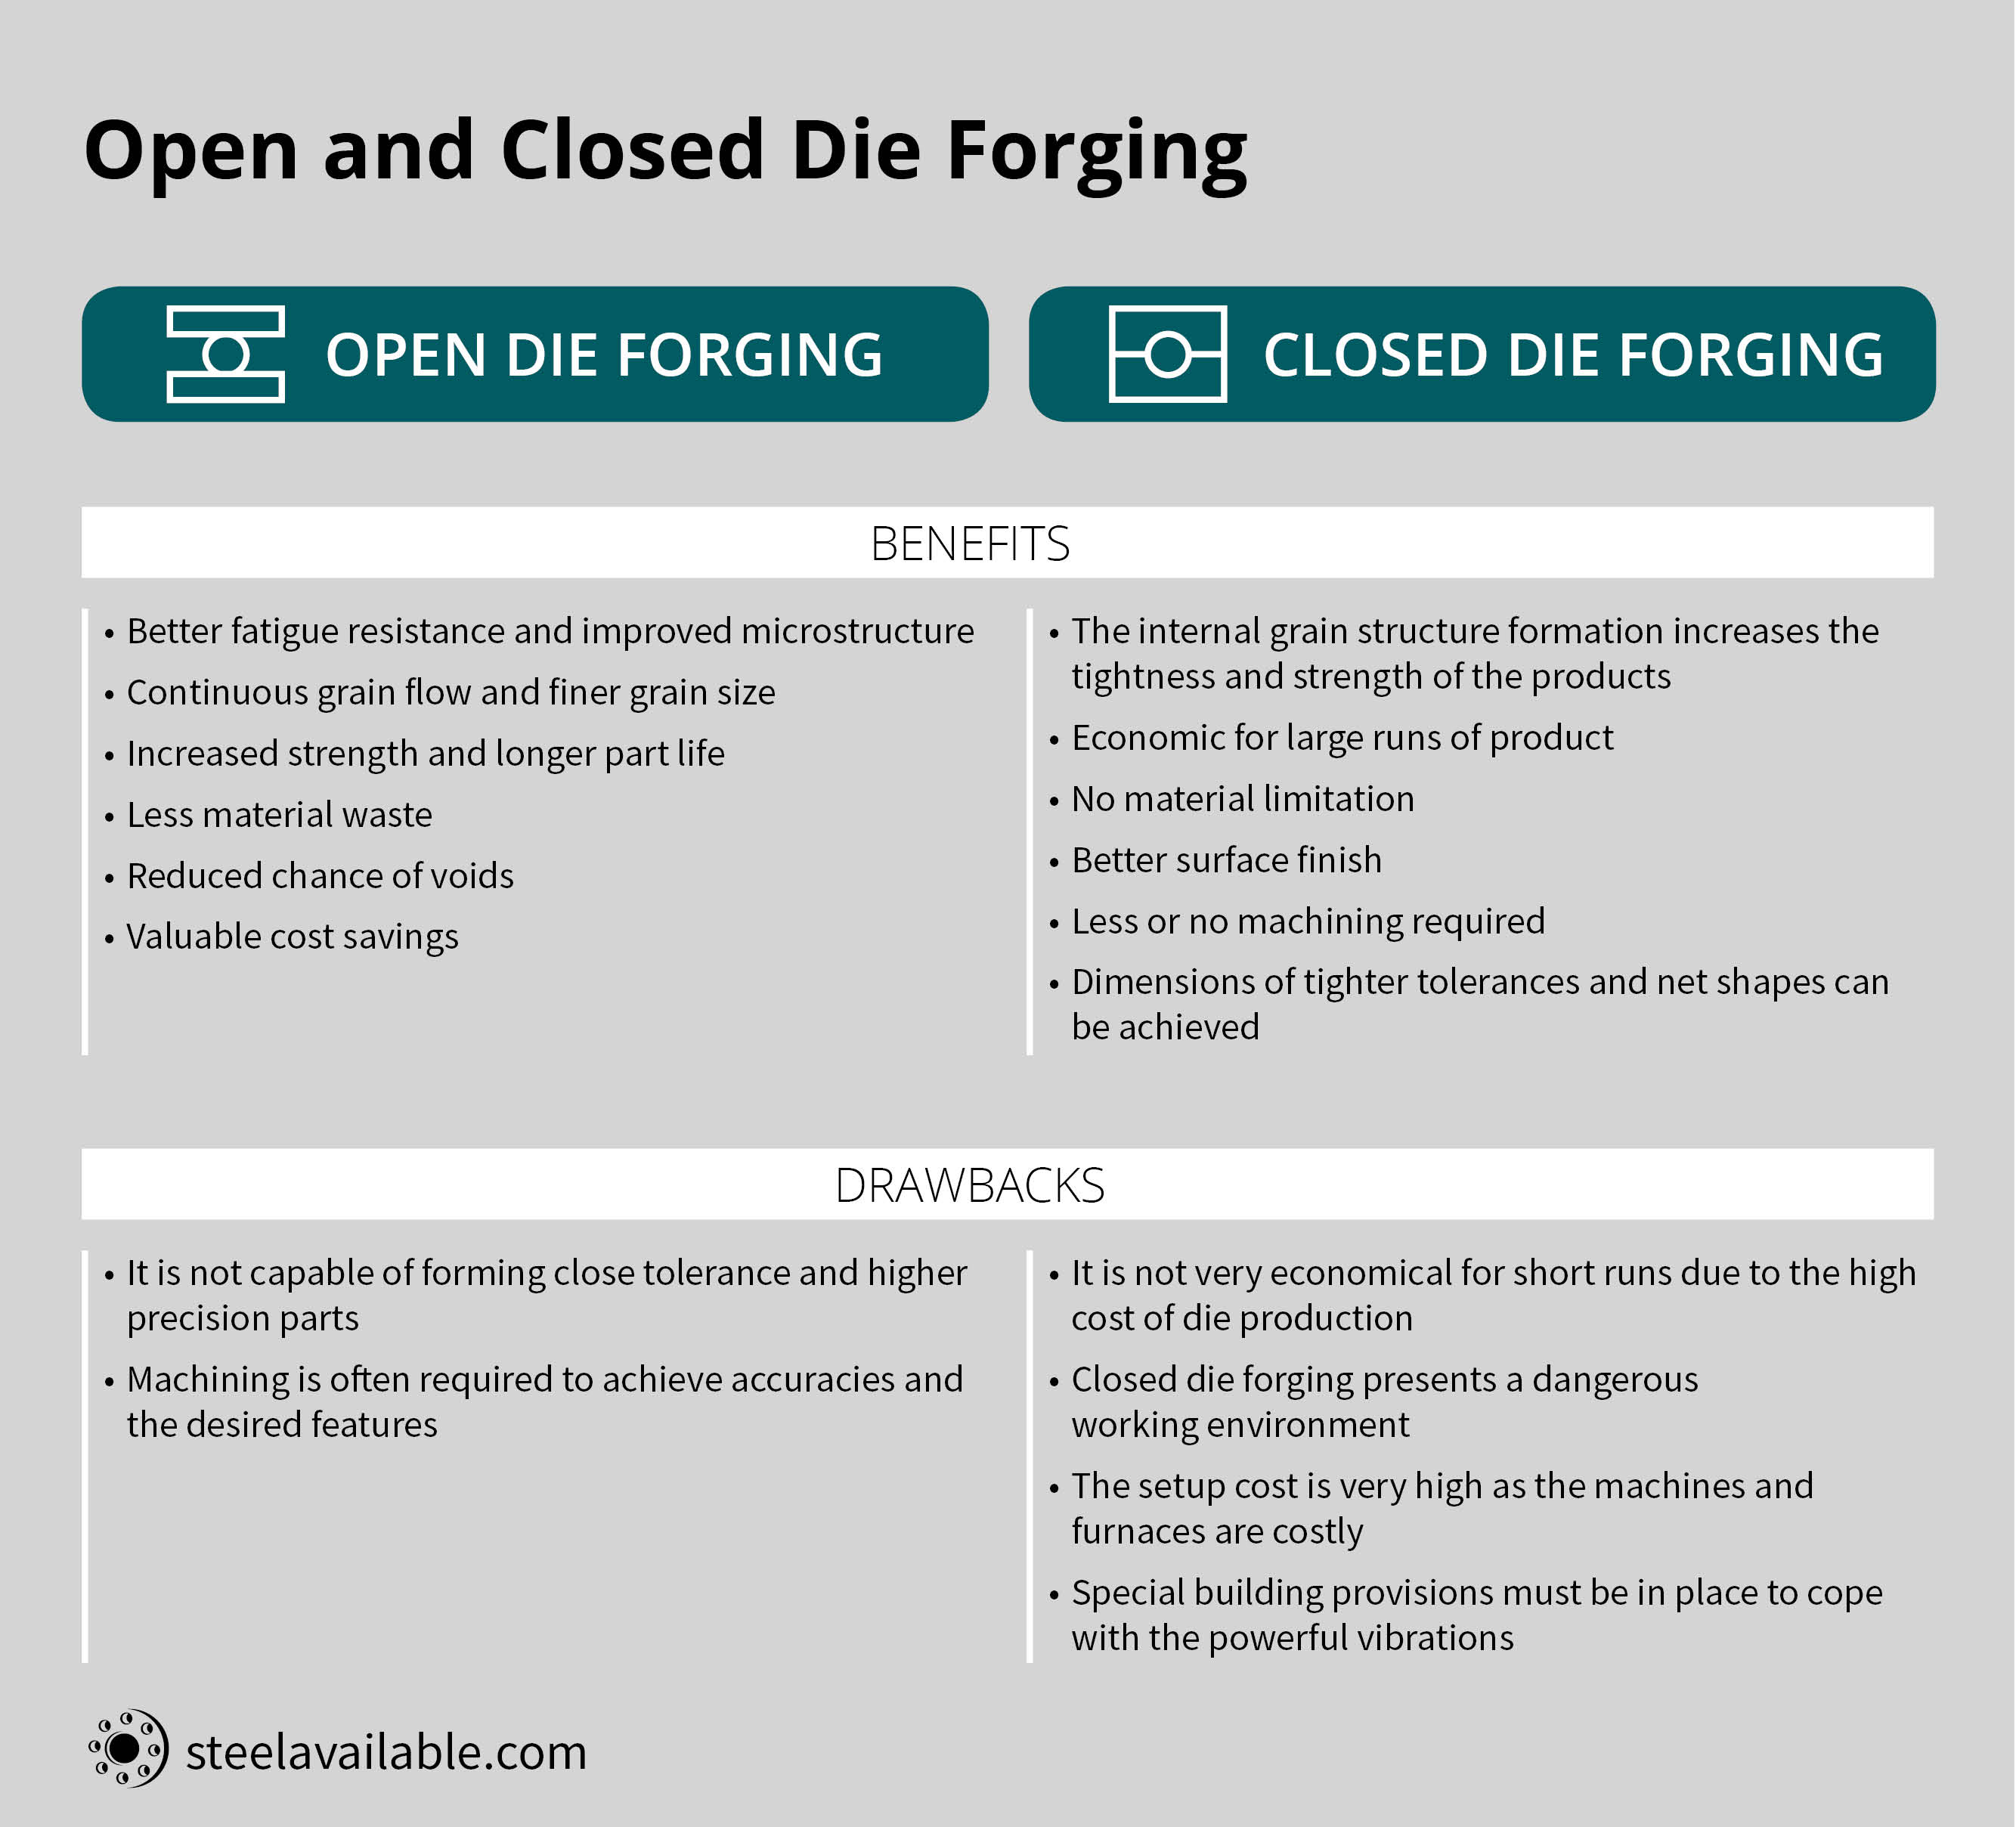 Open die forging vs closed die forging steel available the benefits the drawbacks biocorpaavc